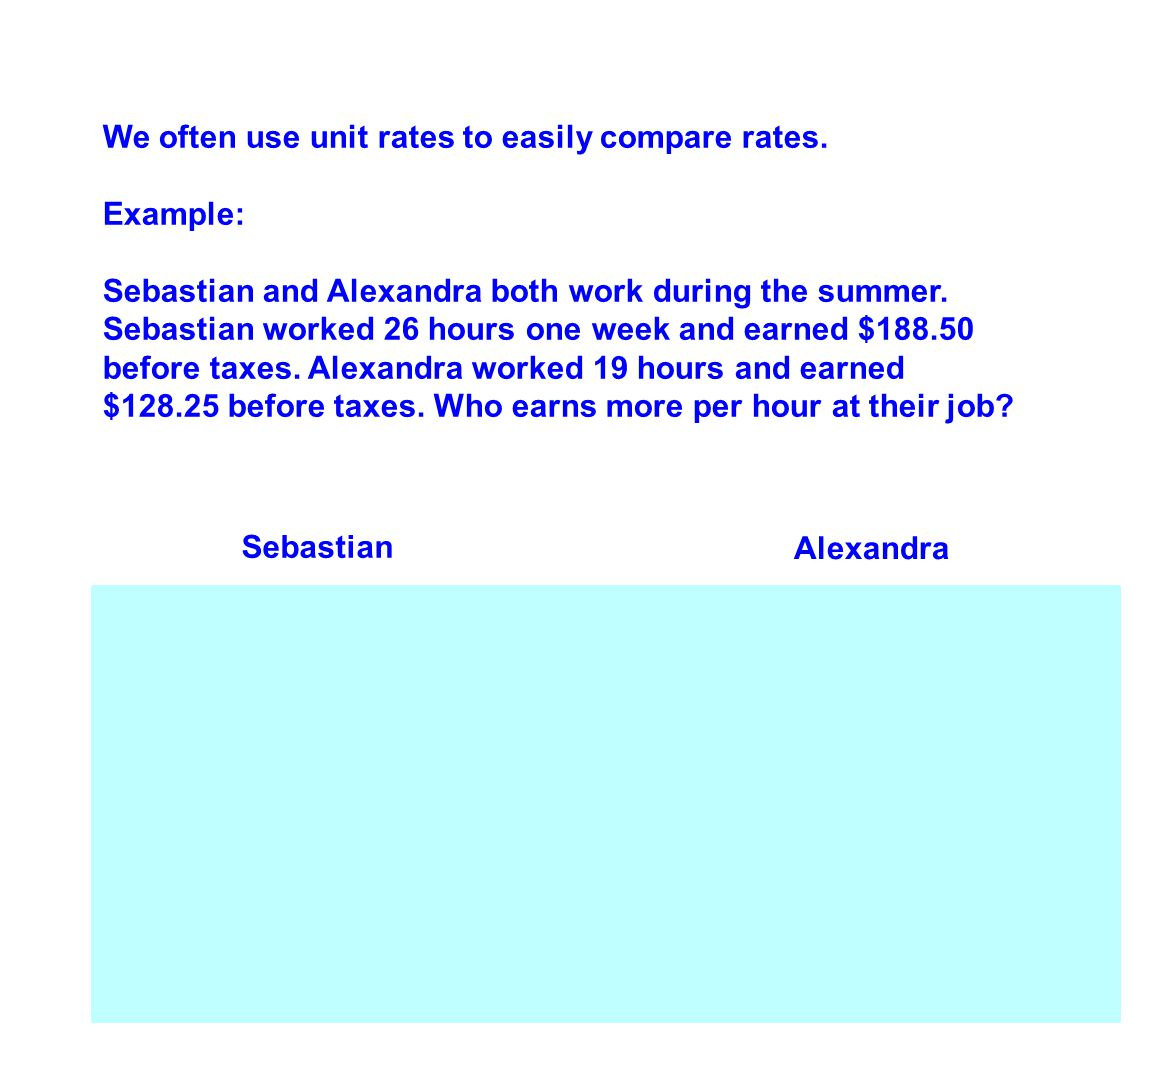 We often use unit rates to easily compare rates.